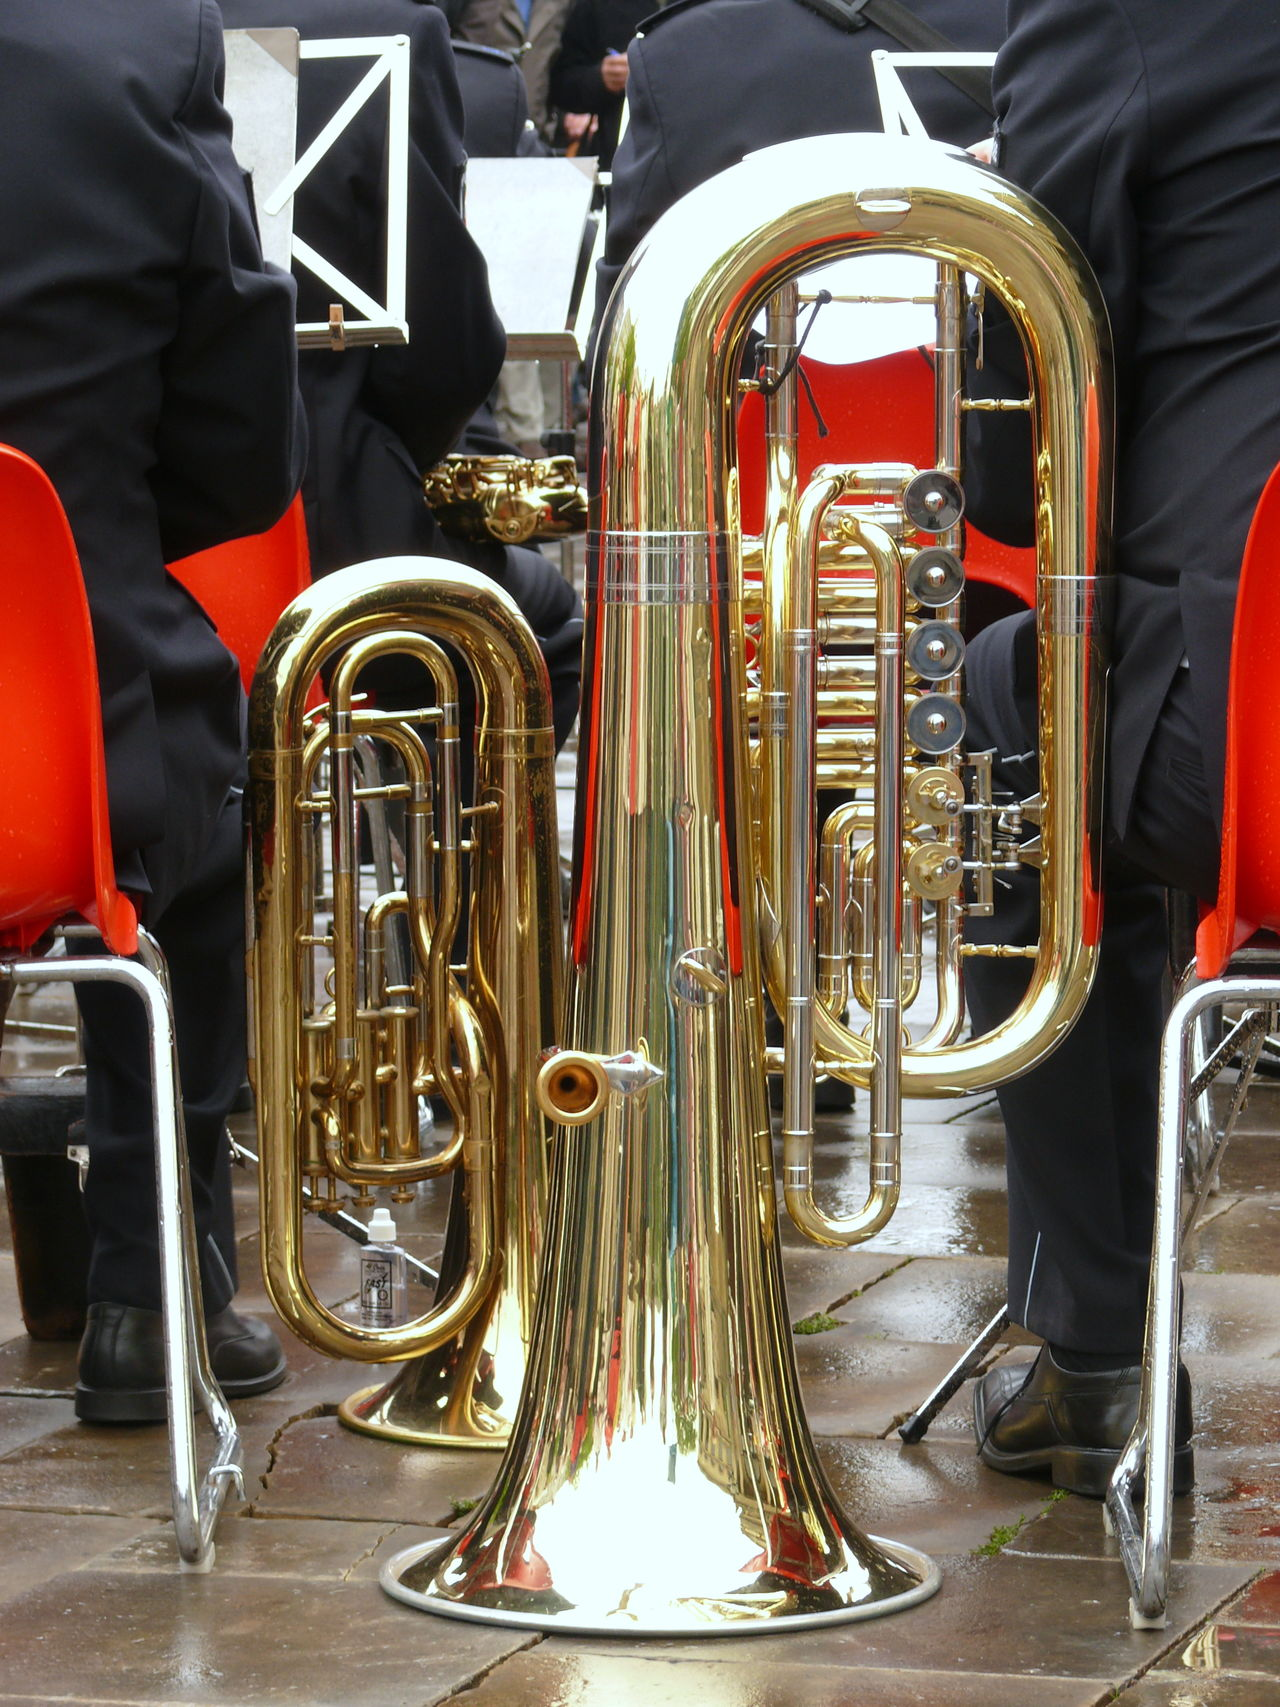 Arts Culture And Entertainment Blaskapelle Blechblasinstrument Day Kapelle Low Section Musical Instrument Outdoors People Performance Tuba